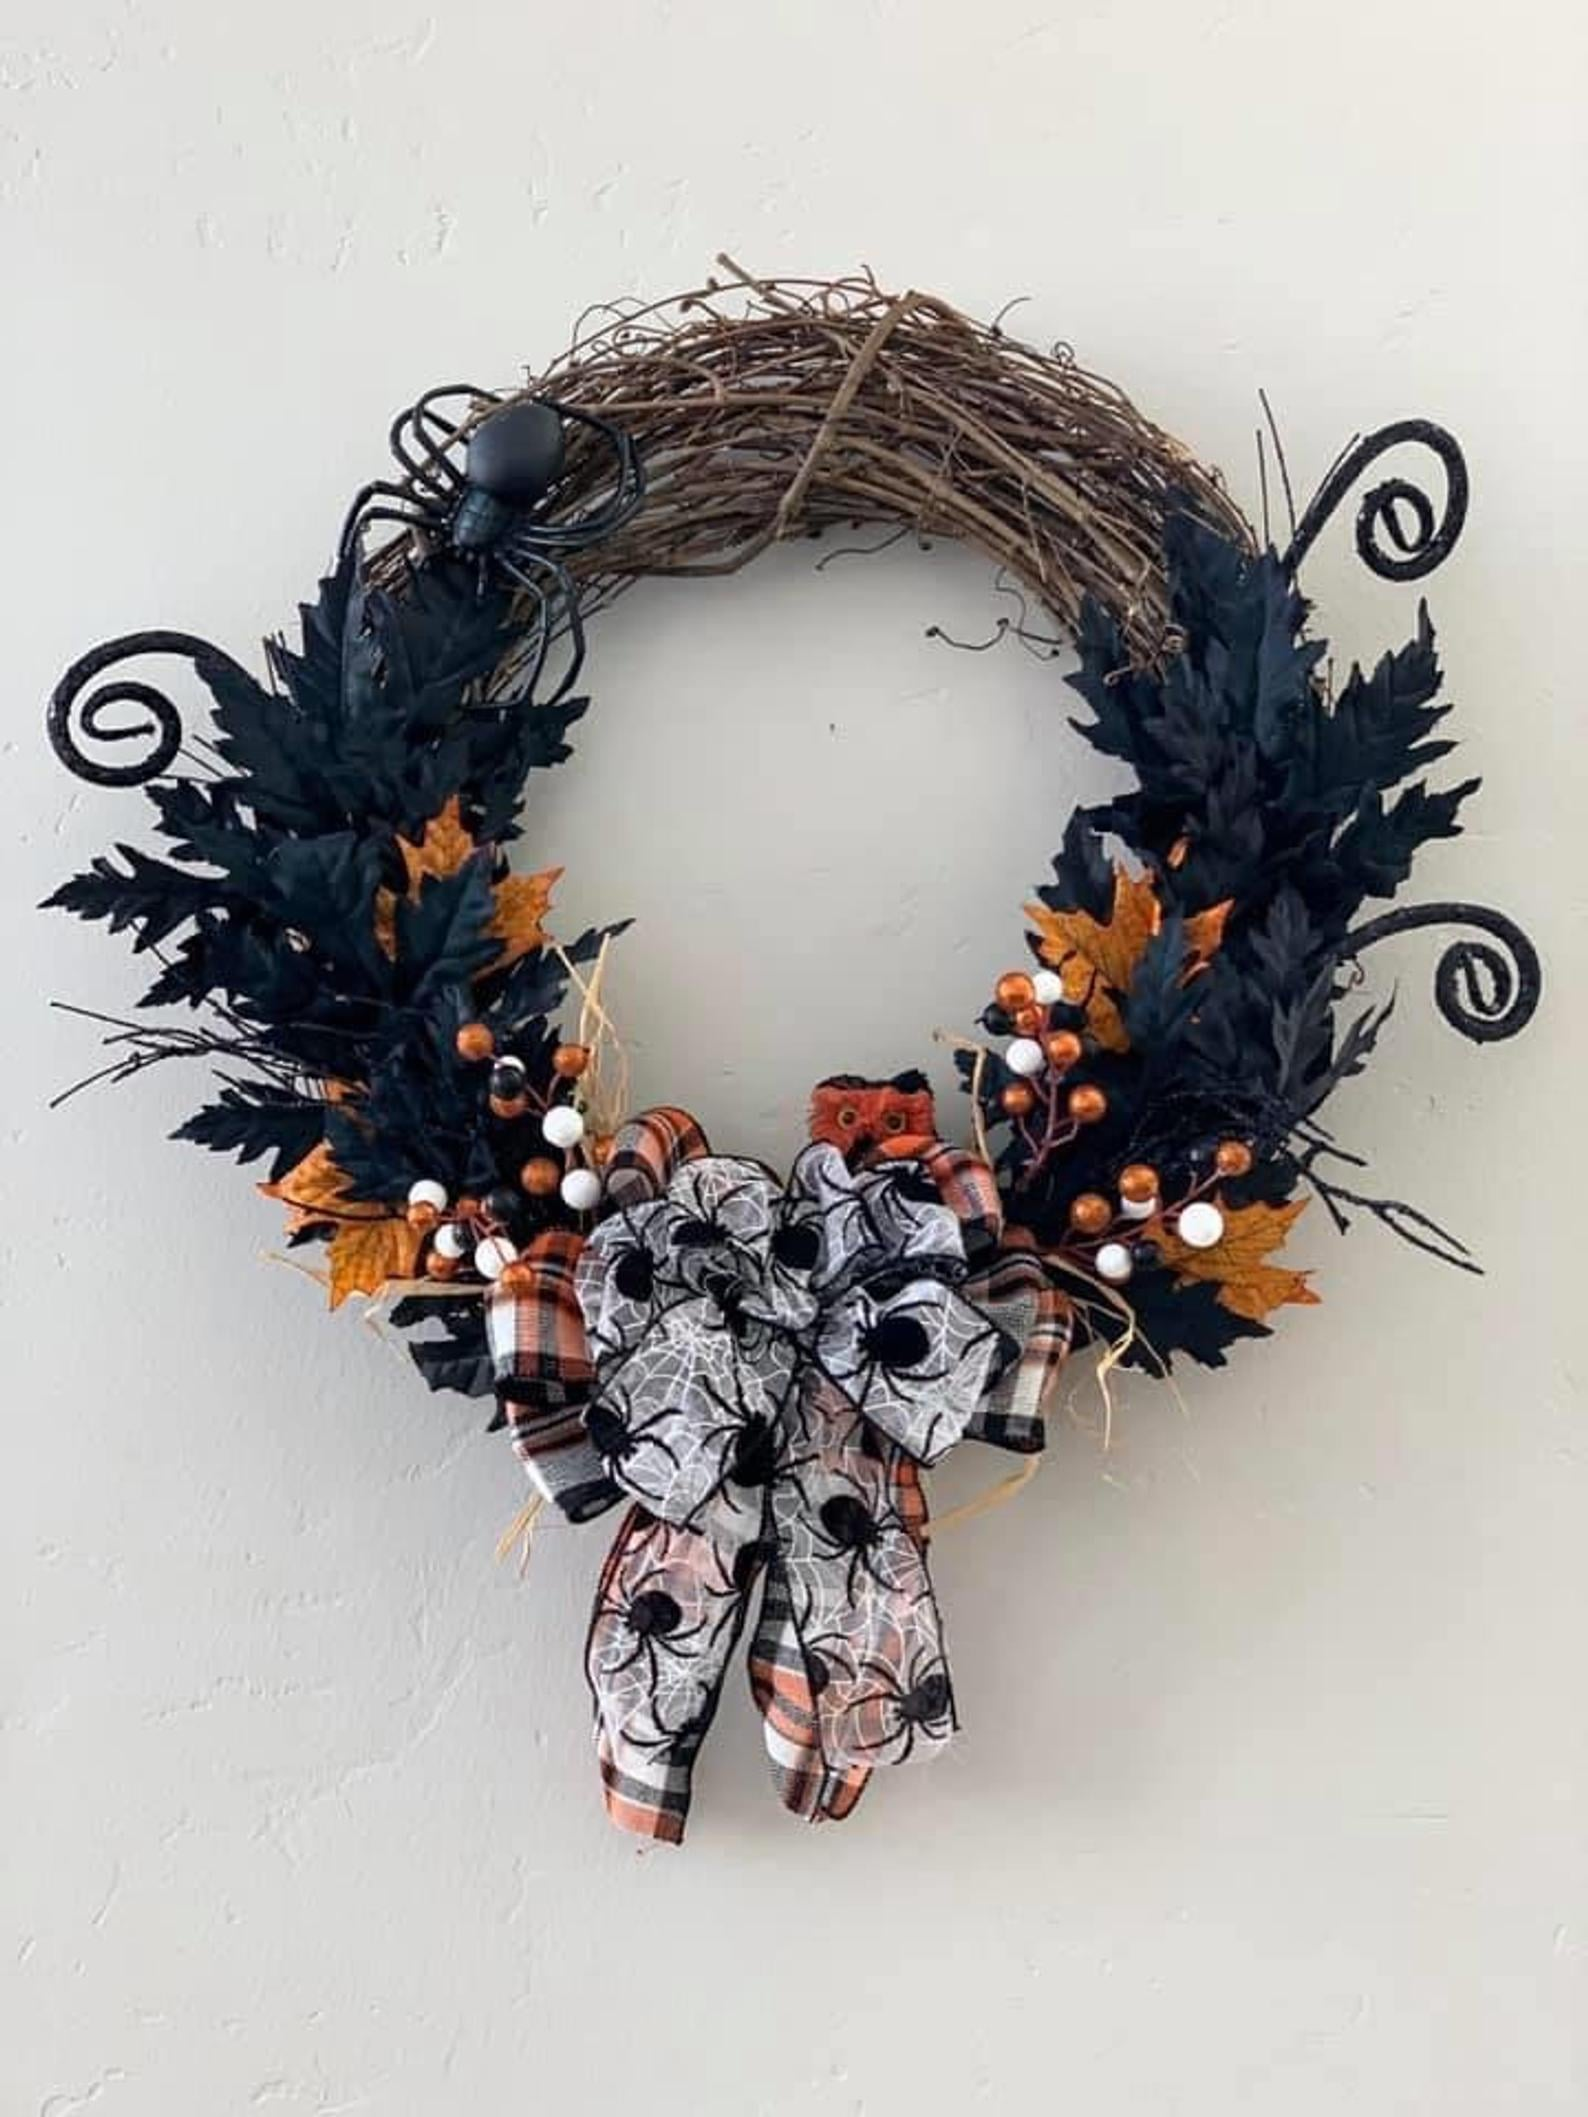 40 Spooky And Festive Halloween Wreaths Popsugar Home